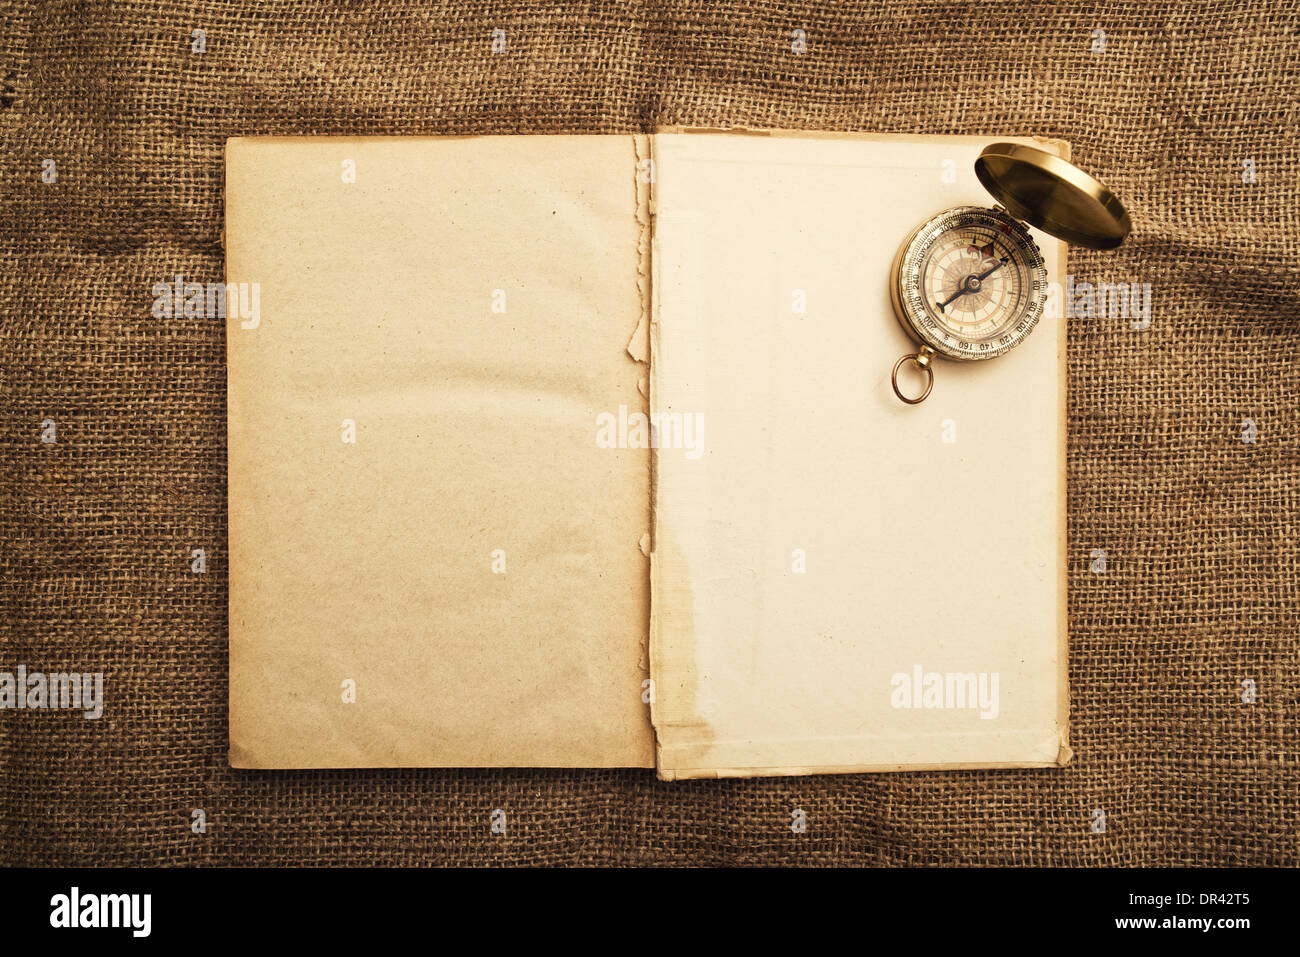 Vintage open book with old navigation compass. - Stock Image